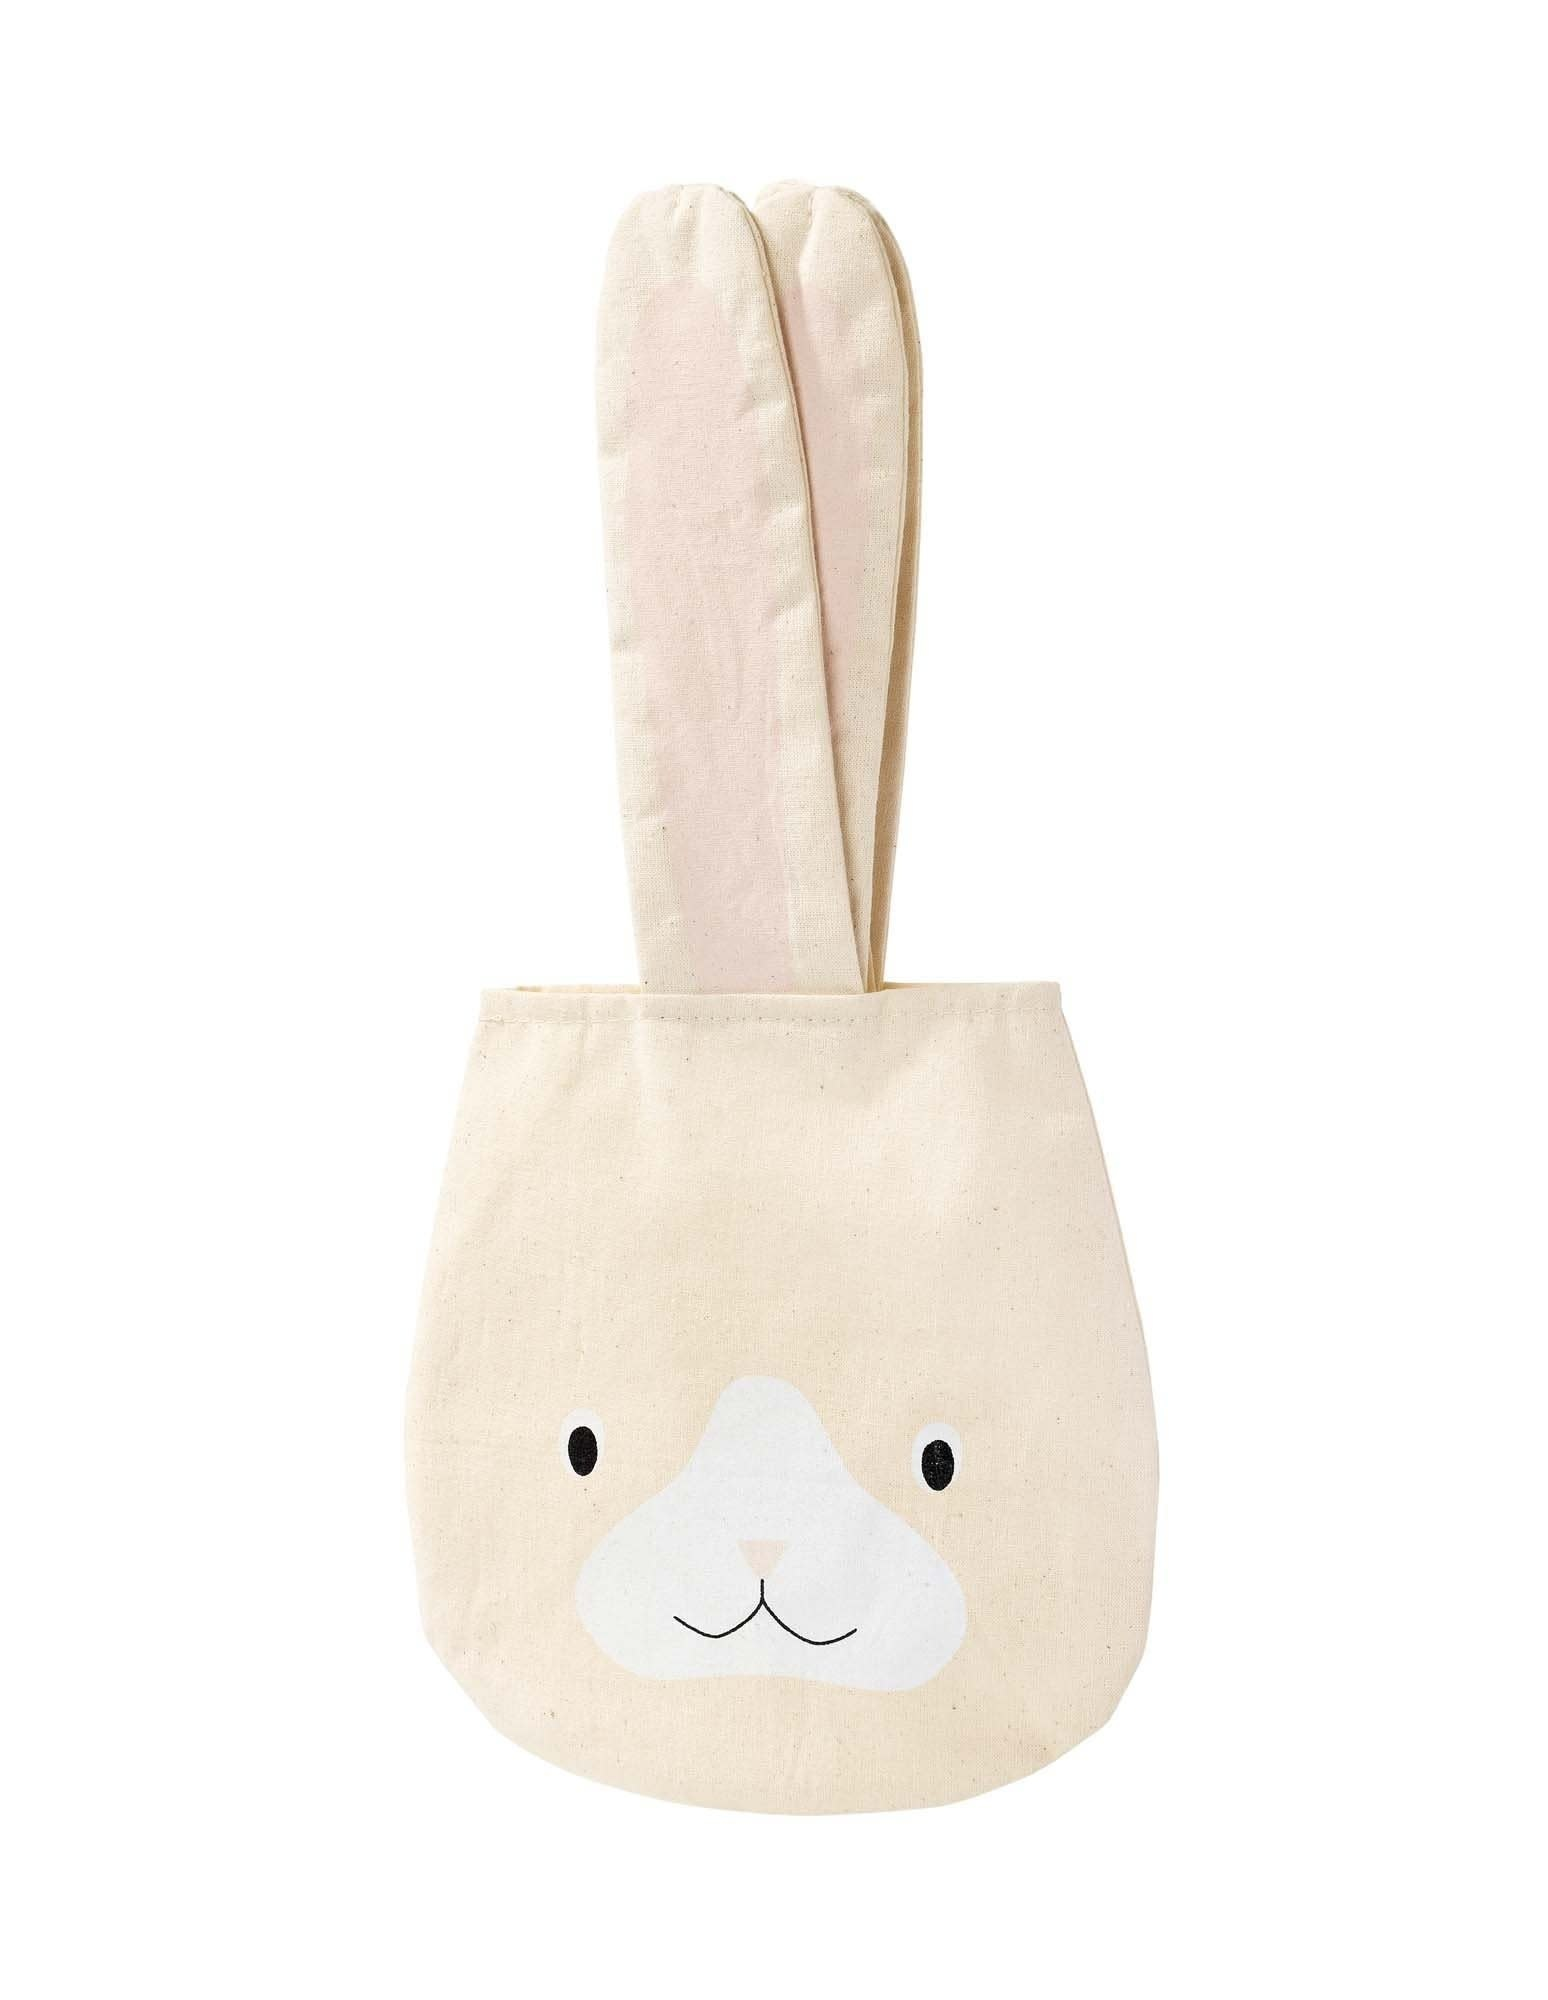 Talking Tables - TT Cloth Bunny Bag with Pom Pom Tail